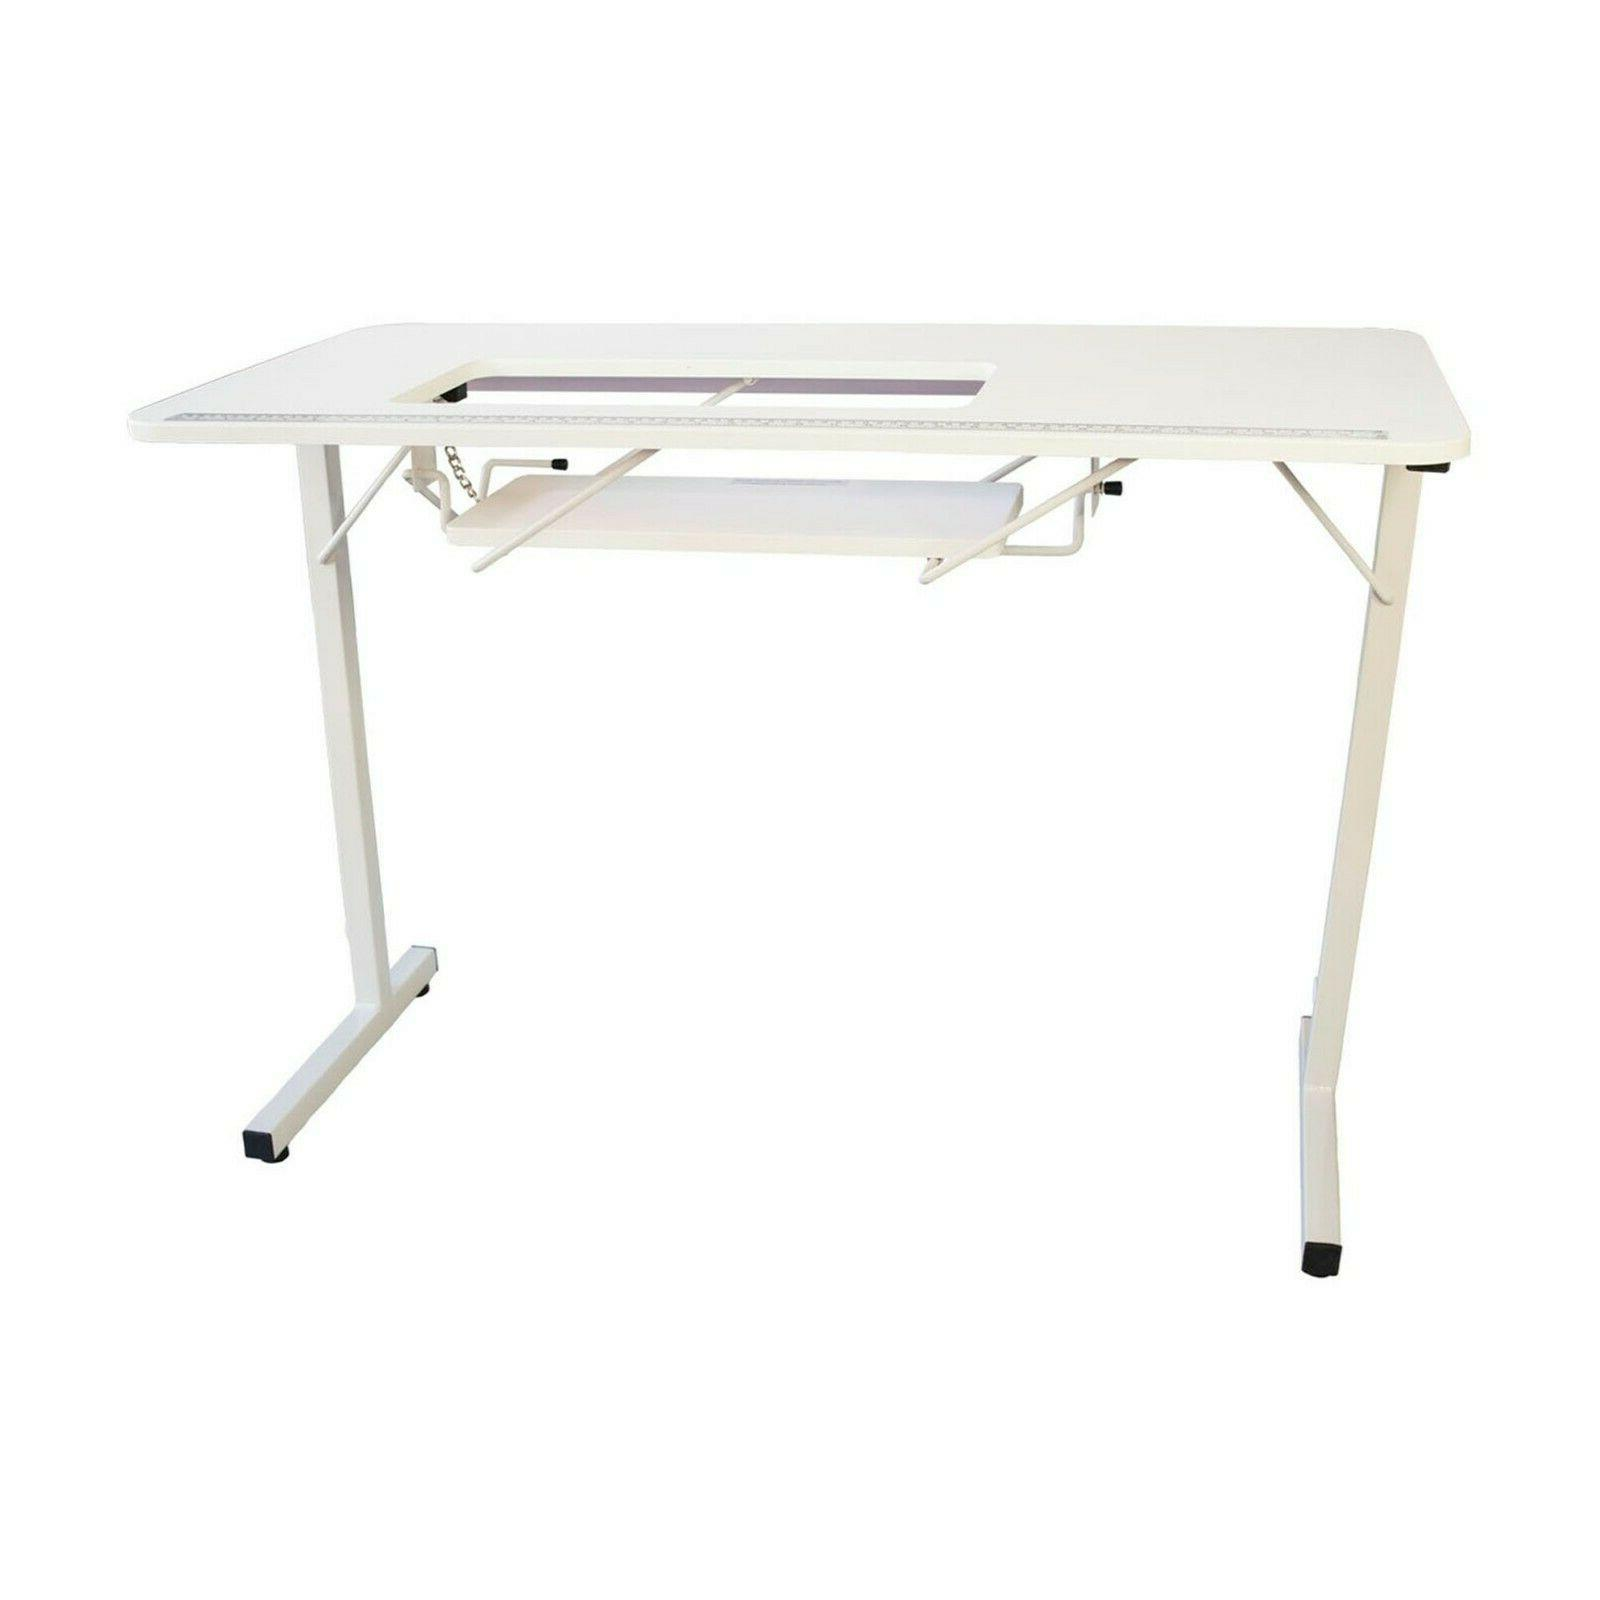 sewingrite foldable craft hobby table